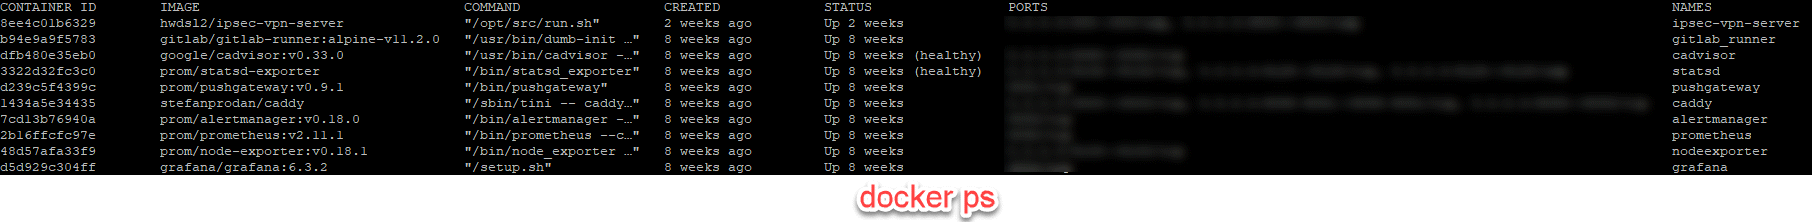 docker ps Example Output